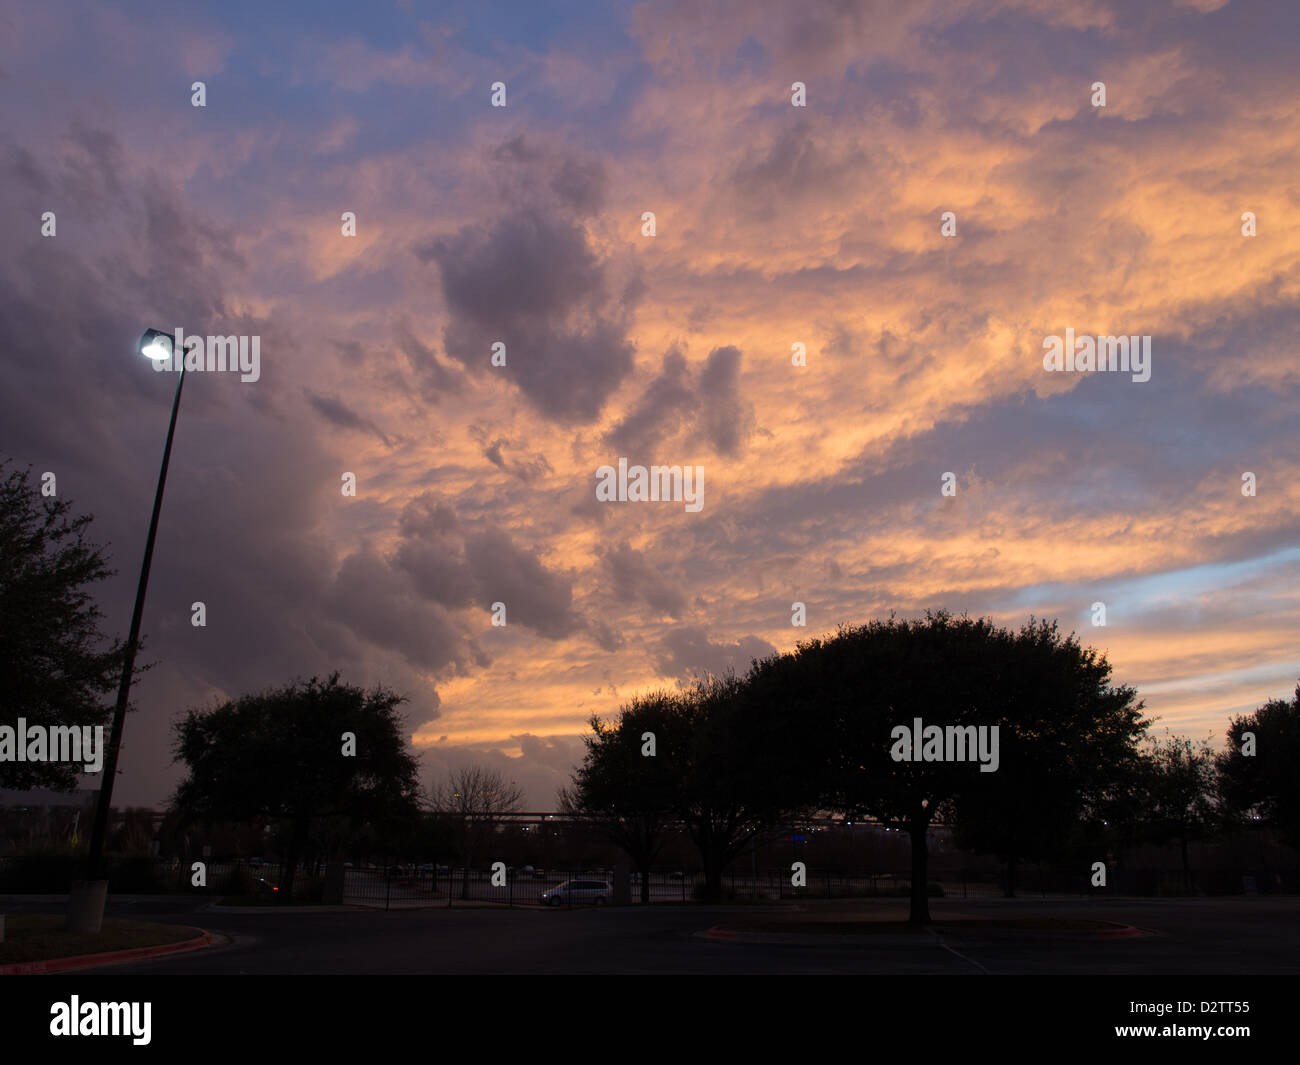 Purple and pink fluffy clouds over a parking lot at sunset - Stock Image